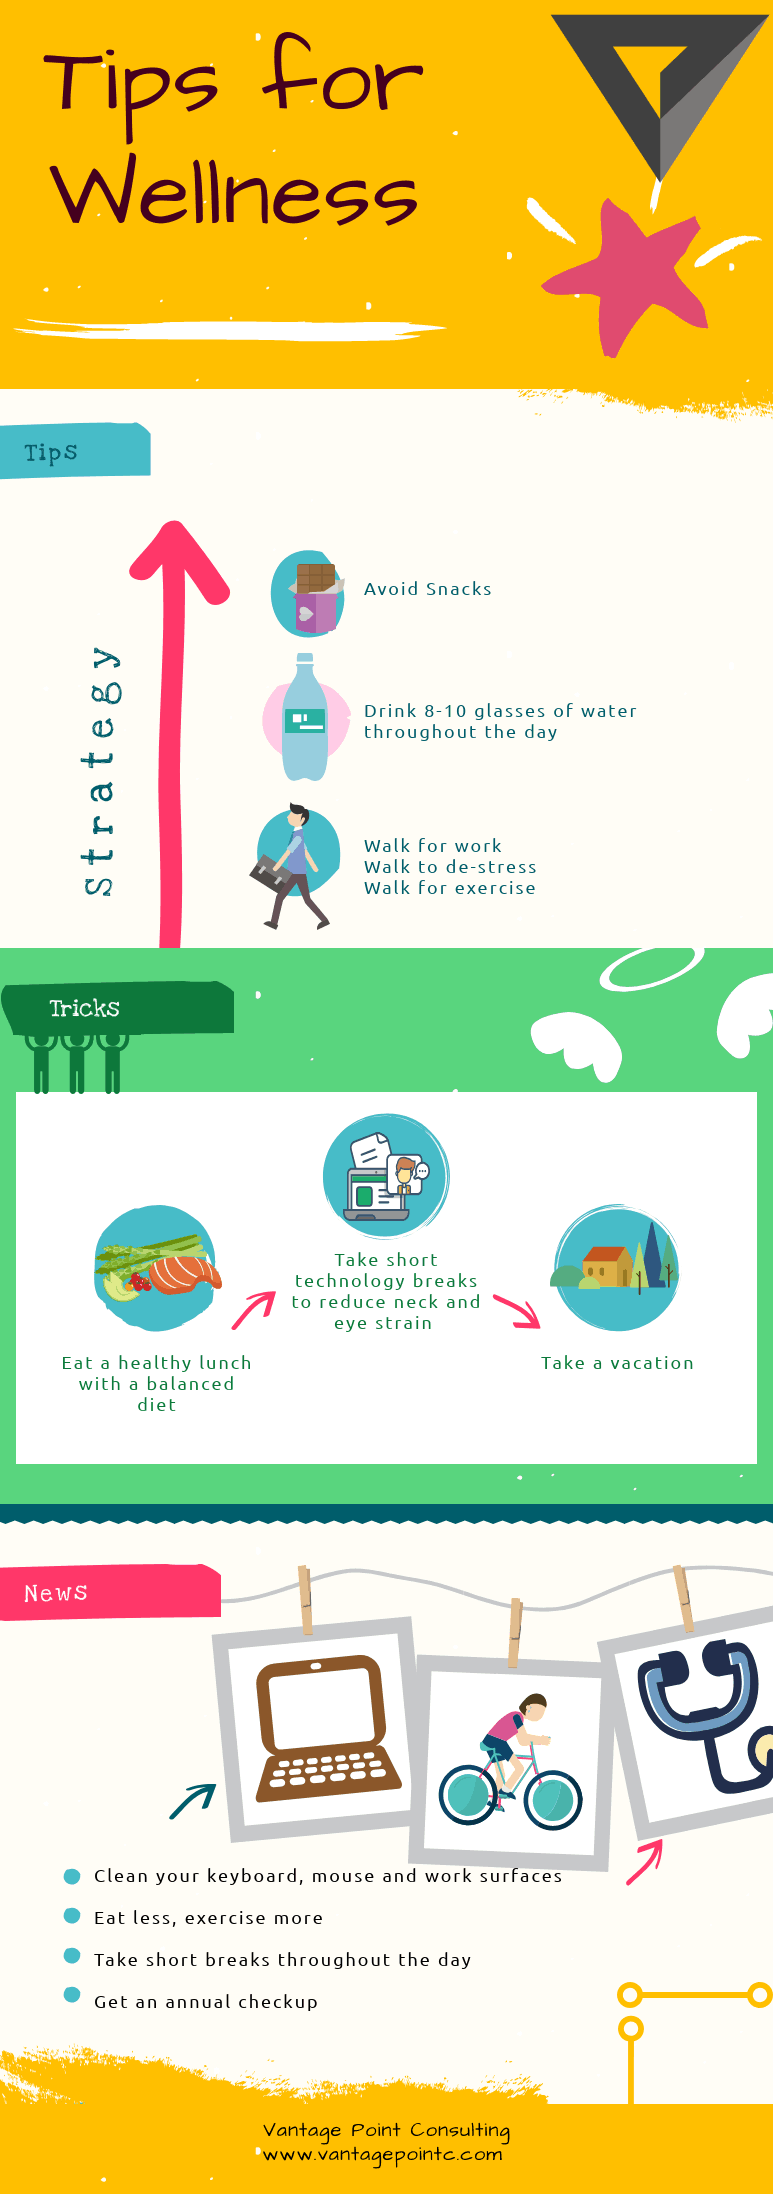 Tips for Wellness infographic